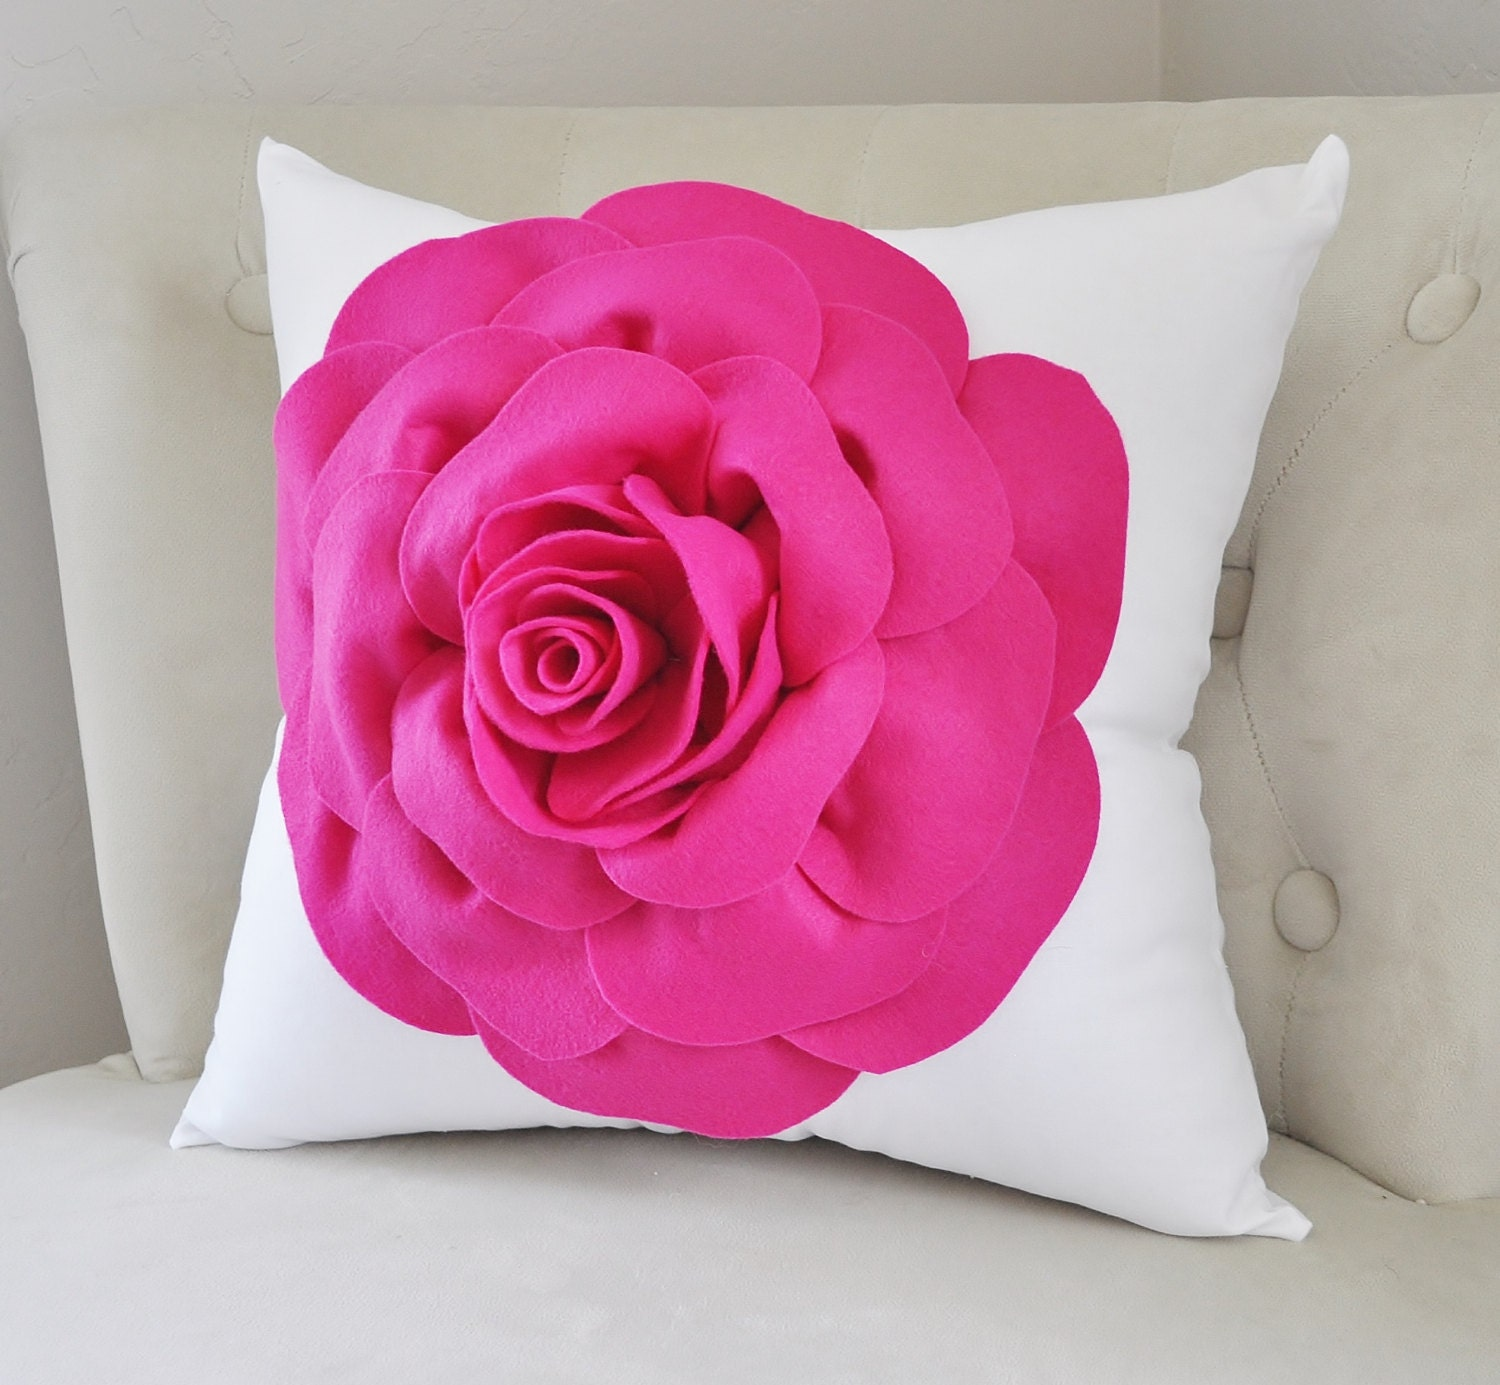 Throw pillow rose pillow home decor decorative pillow - Decorative throw pillows ...